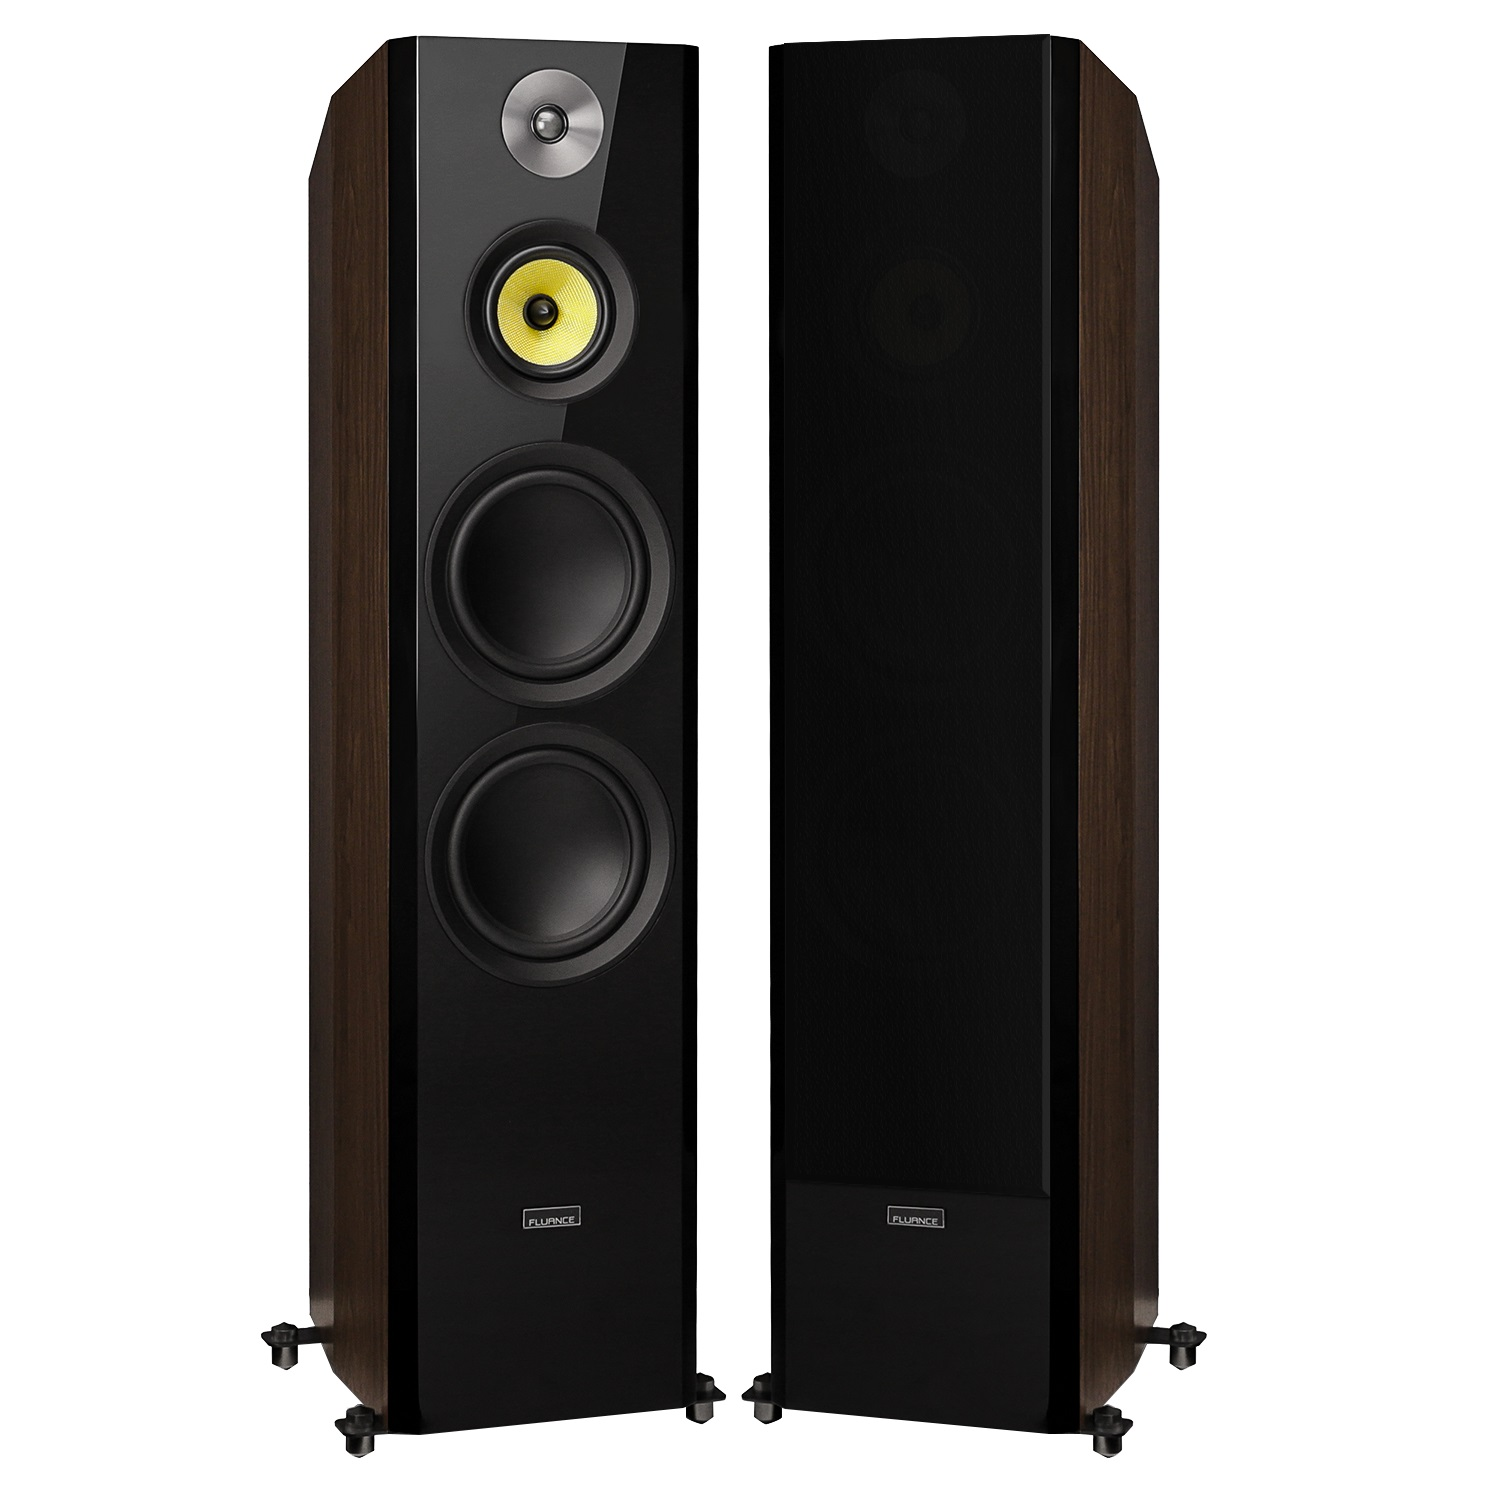 Signature Hi-Fi Three-way Floorstanding Speaker